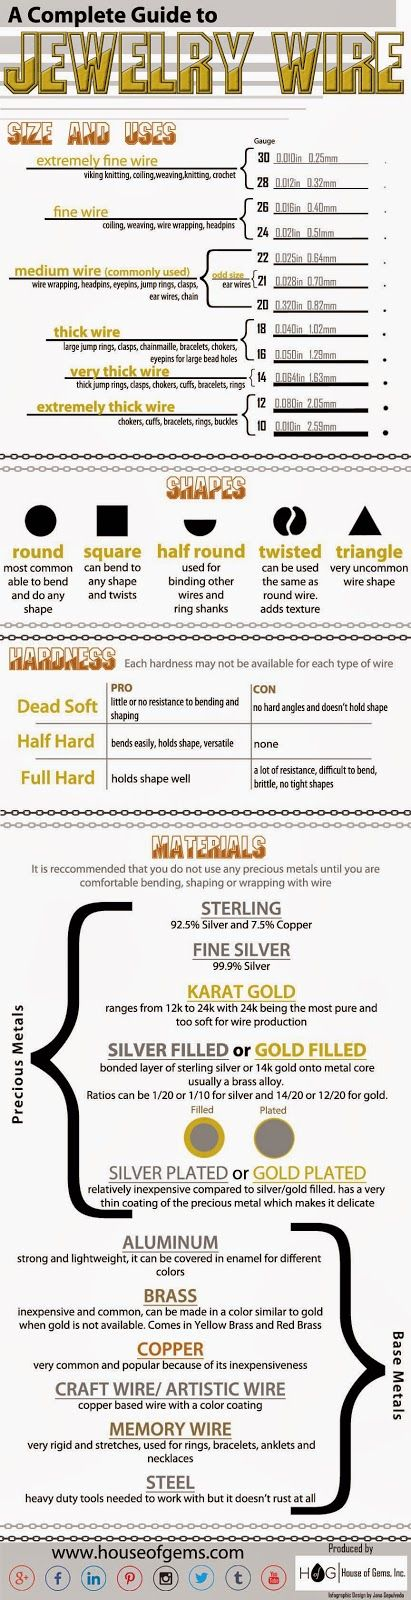 Useful information for wire jewelry makers !